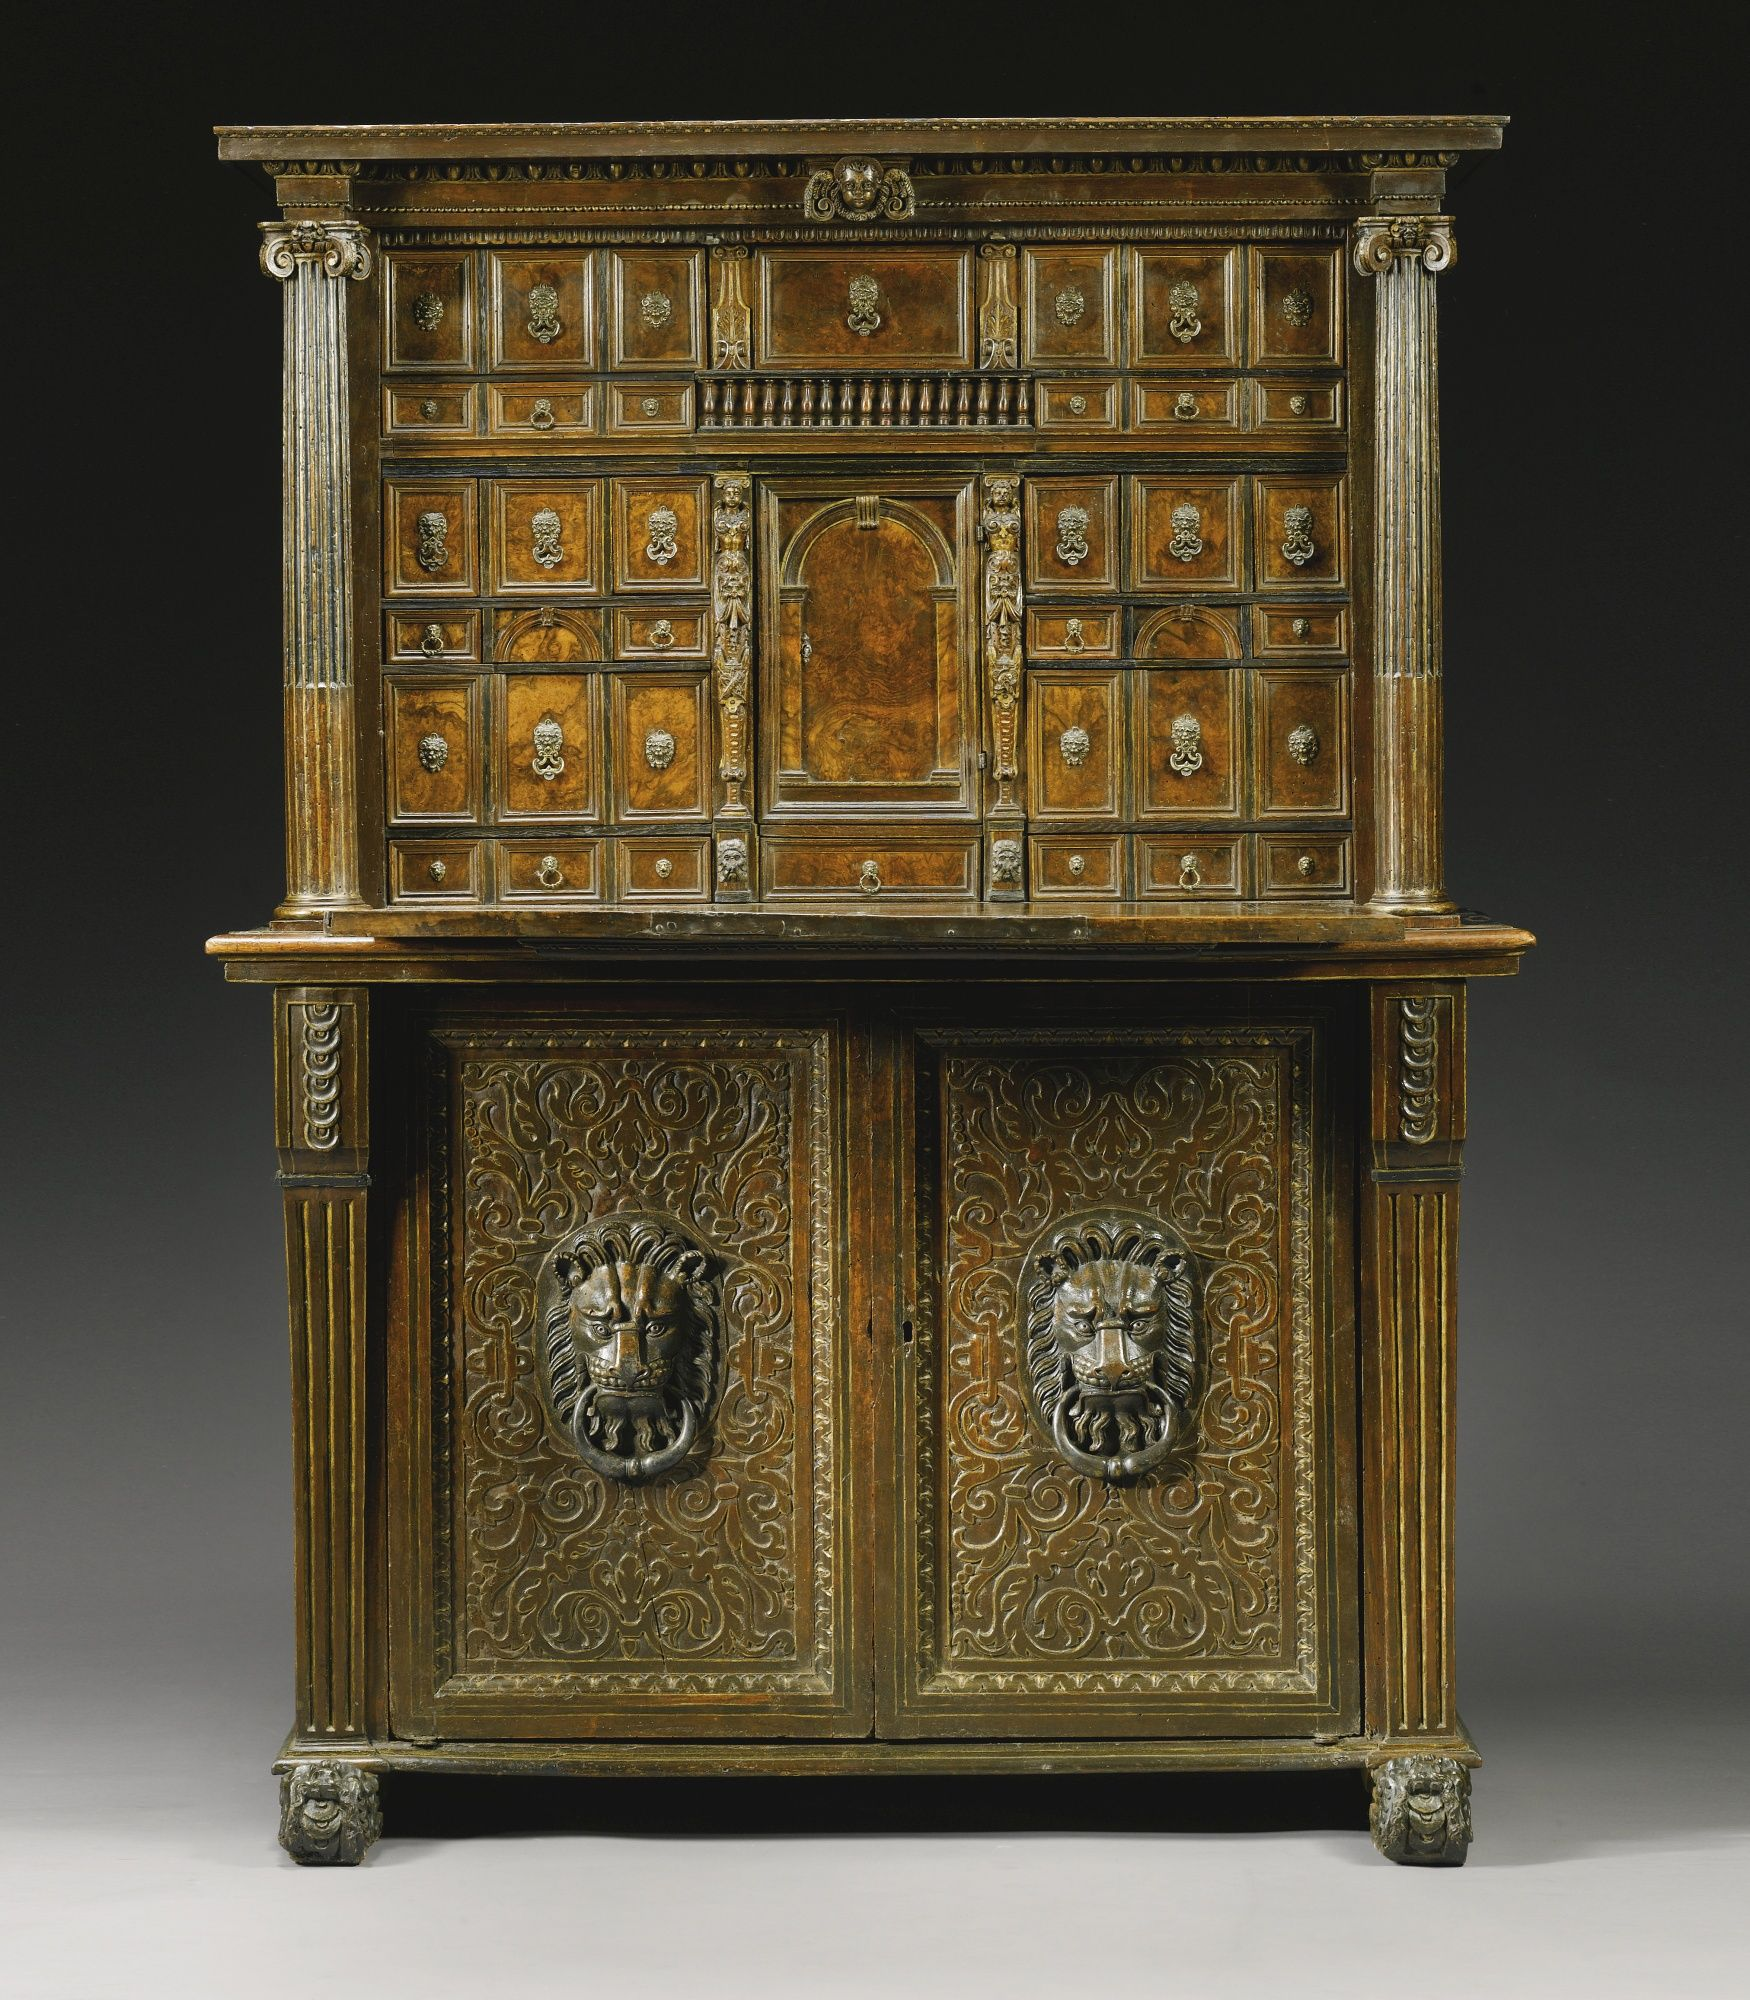 Muebles Italianos Clasicos An Italian Renaissance Ebony Inlaid Parcel Gilt And Walnut